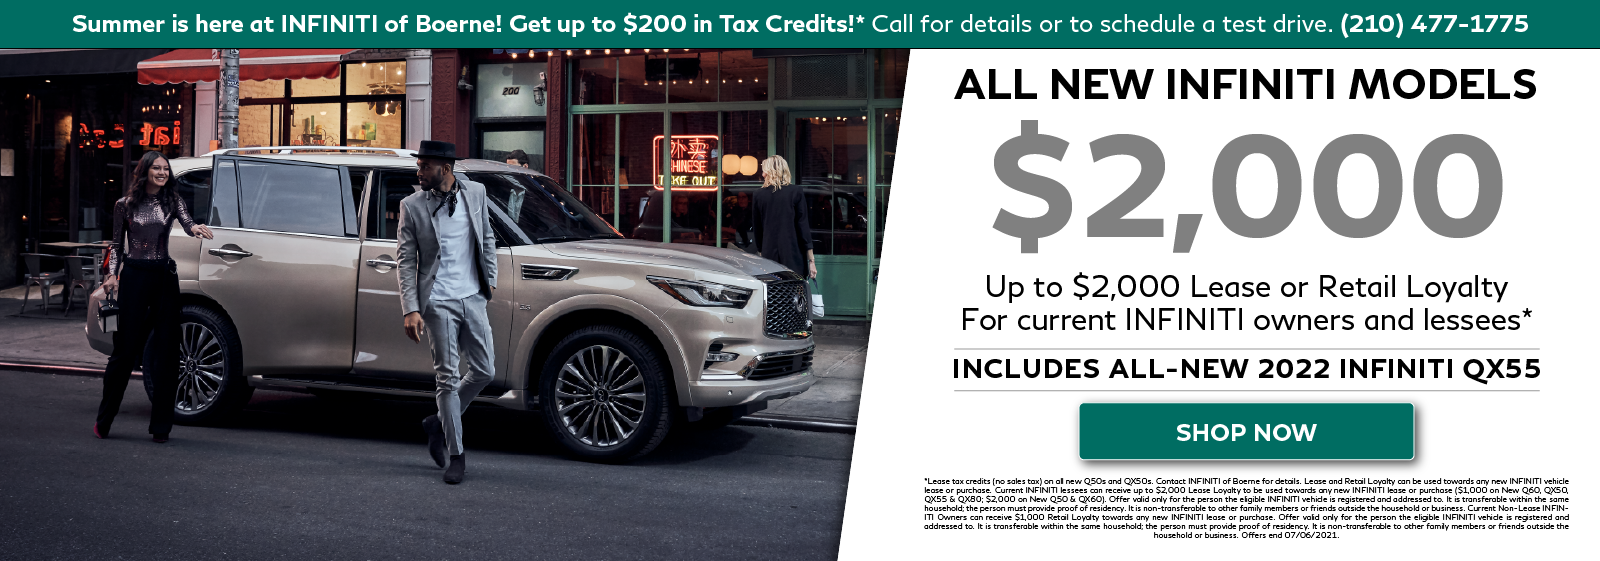 Loyalty offers available all new 2020-2022 INFINITI models. Click to shop now.